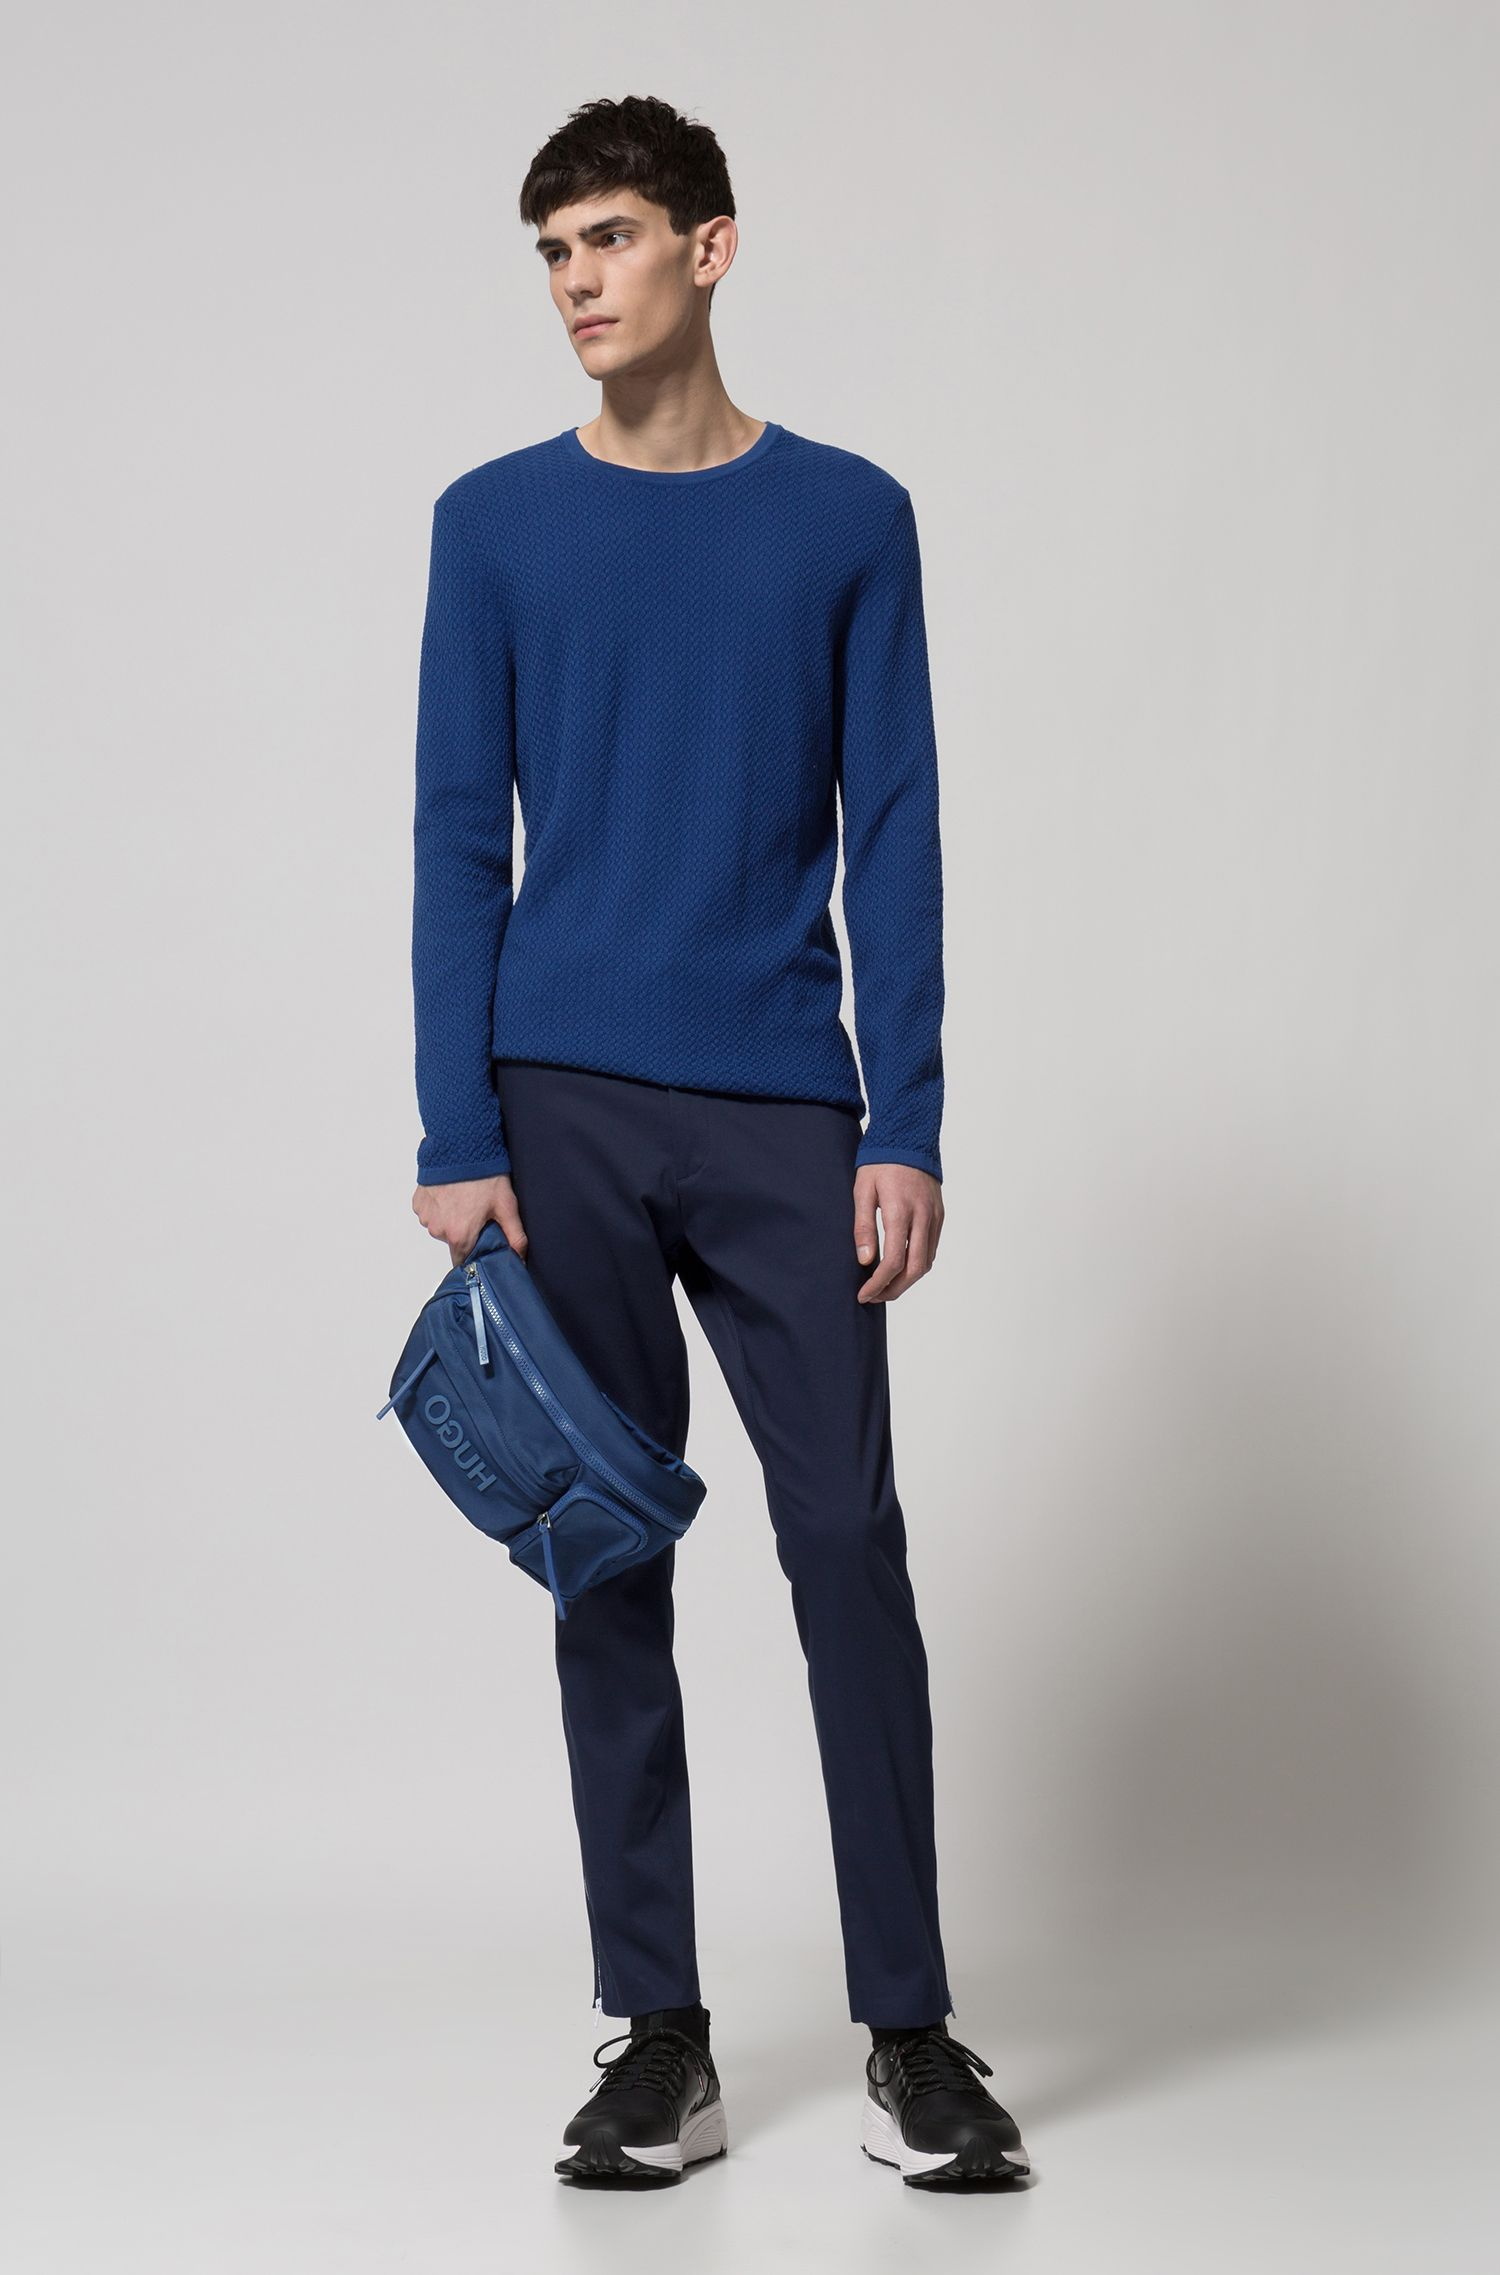 Slim-fit sweater in herringbone cotton jacquard